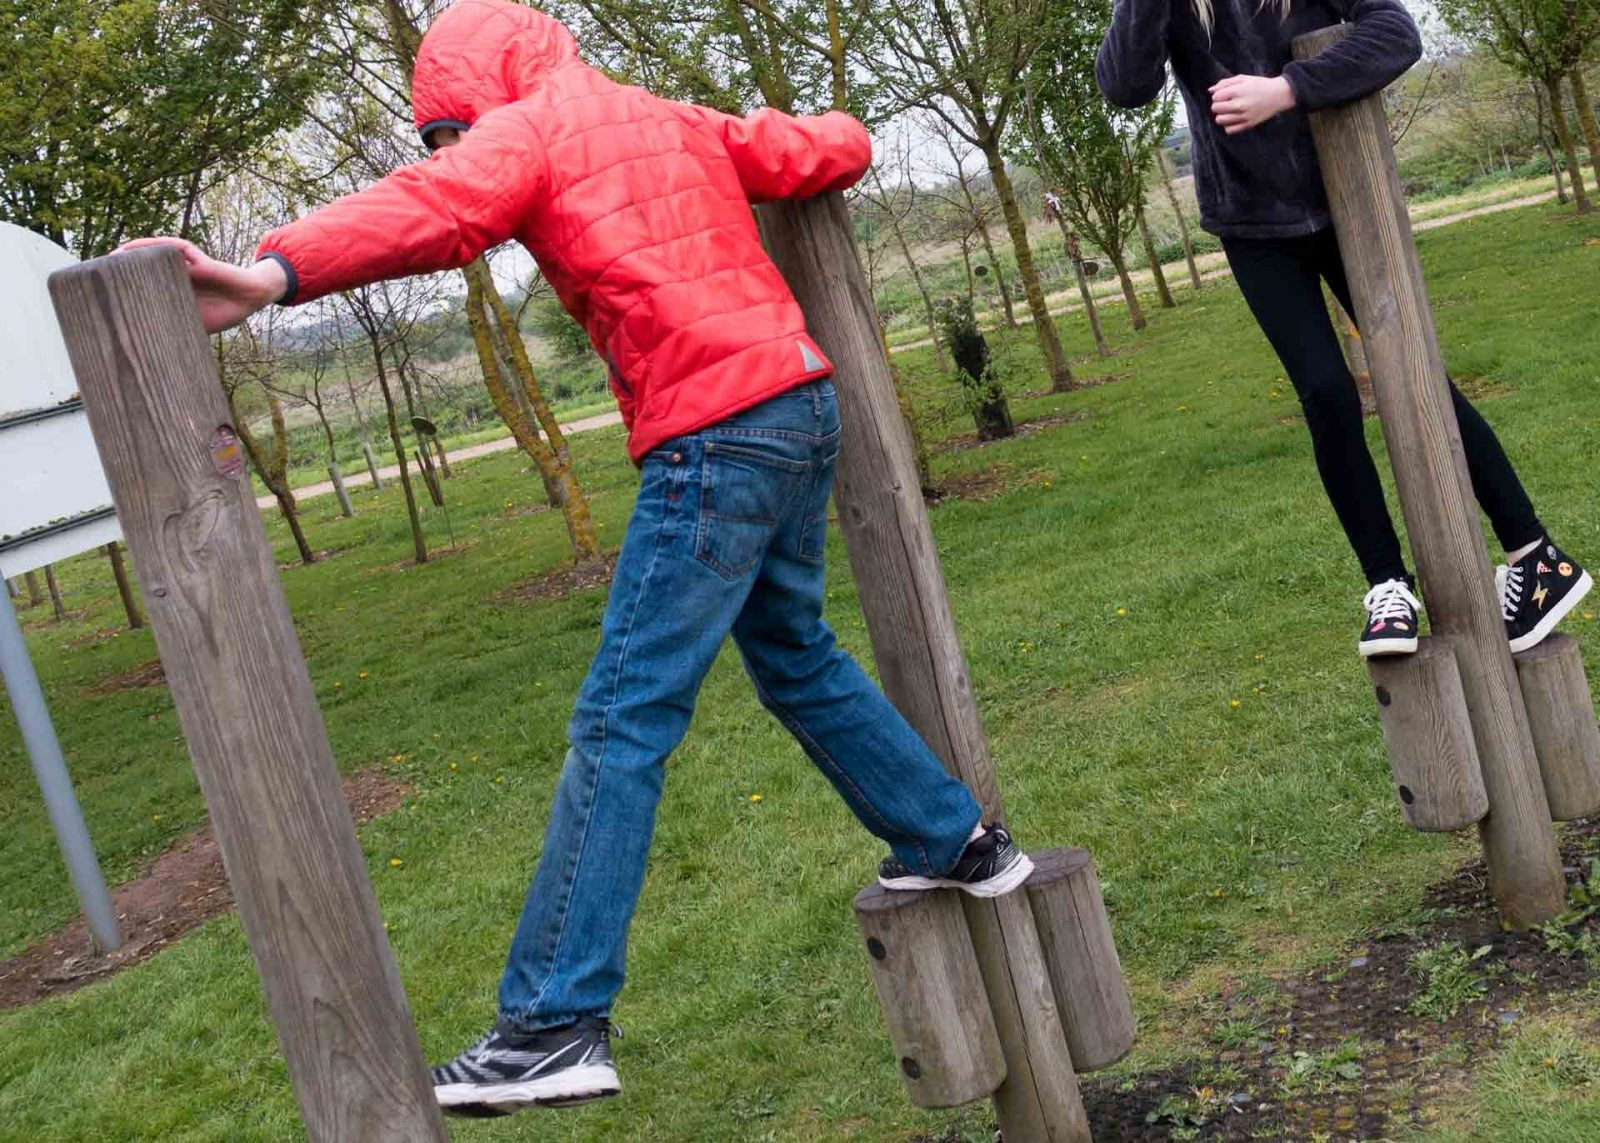 Discovering the National Memorial Arboretum with Kids on Falcondale Life blog. A day out in this sculpture park with visitor facilities including a playground and a review of the restaurant. Visitor information for families. Playground.